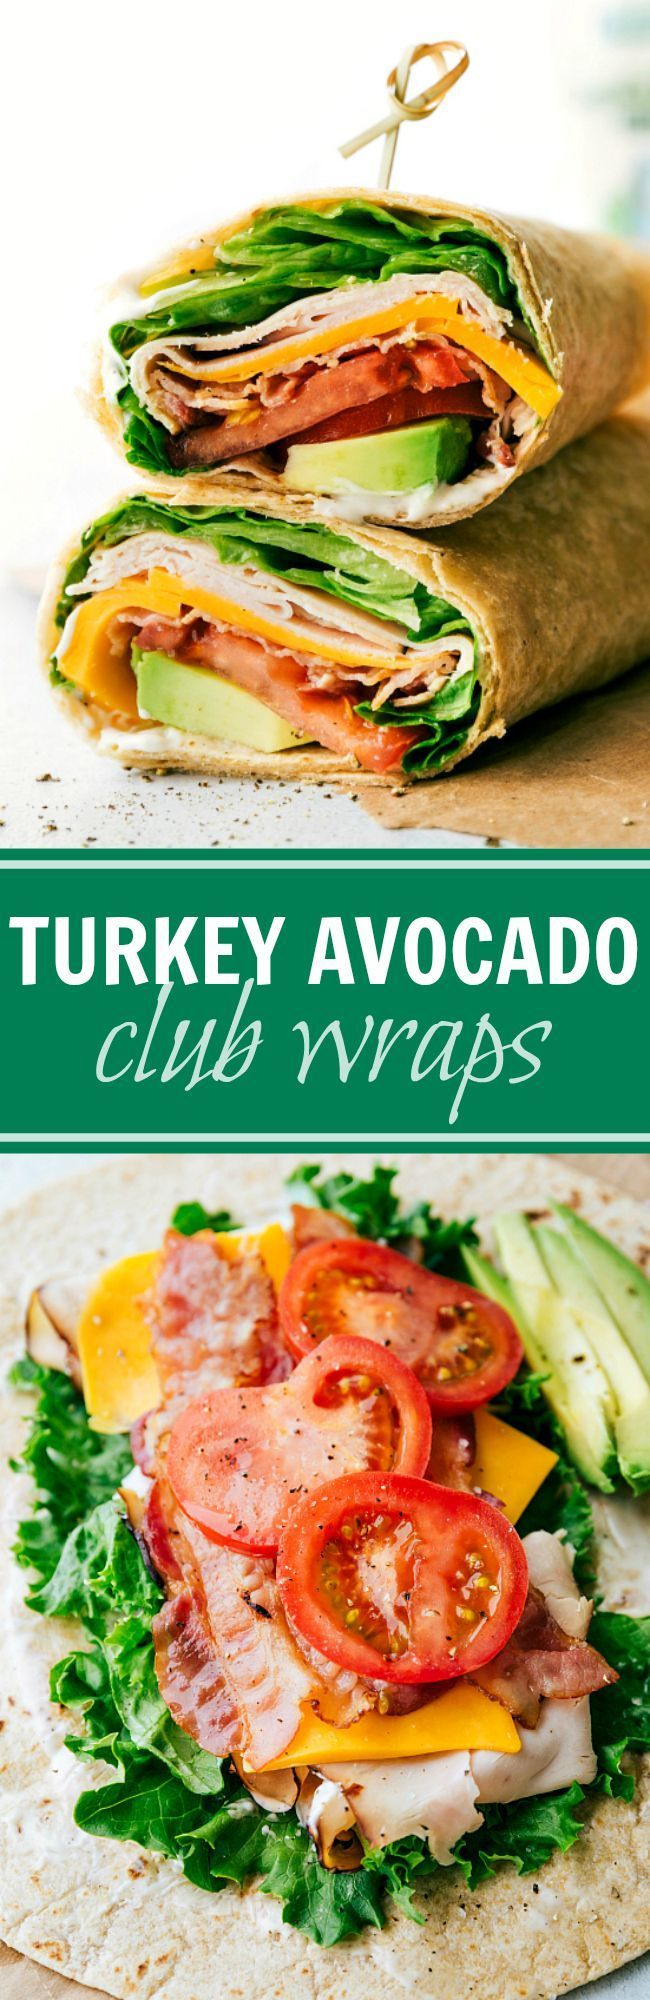 The BEST Turkey Avocado Ranch & Bacon CLUB WRAPS. Easy, healthy, delicious, and ready in under 10 minutes! via chelseasmessyapro...